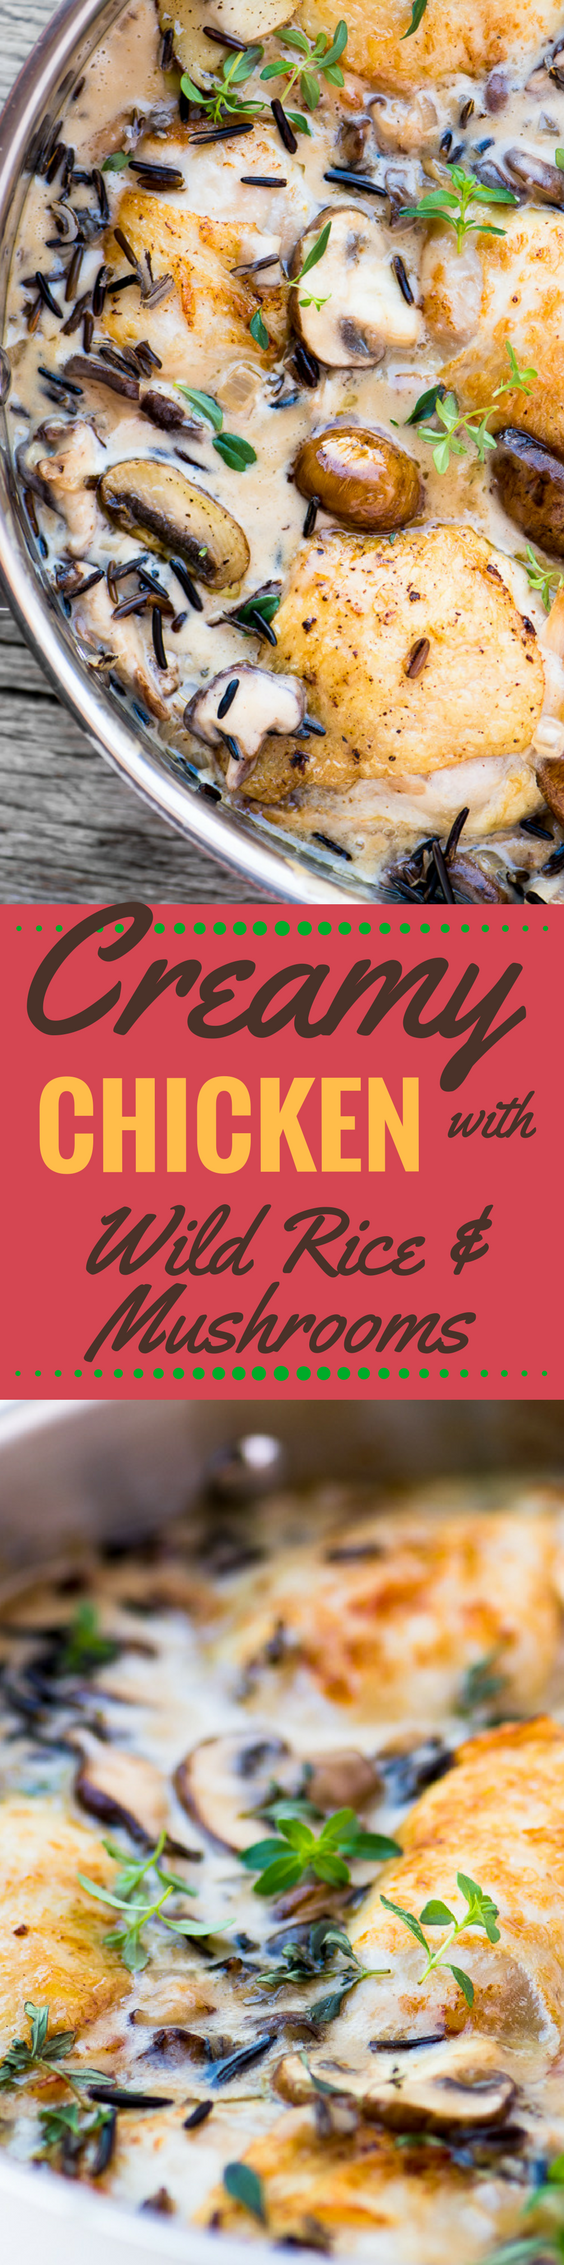 Creamy Chicken with Wild Rice and Mushrooms ~ this earthy, stick-to-your-ribs skillet dinner is ideal for a chilly fall night! #chicken #chickenandrice #bestchickenthighrecipe #chickenthighrecipe #comfortfood #fall #wildrice #mushrooms #easychickenrecipe #deliciouschicken #dinner #creamofmushroom